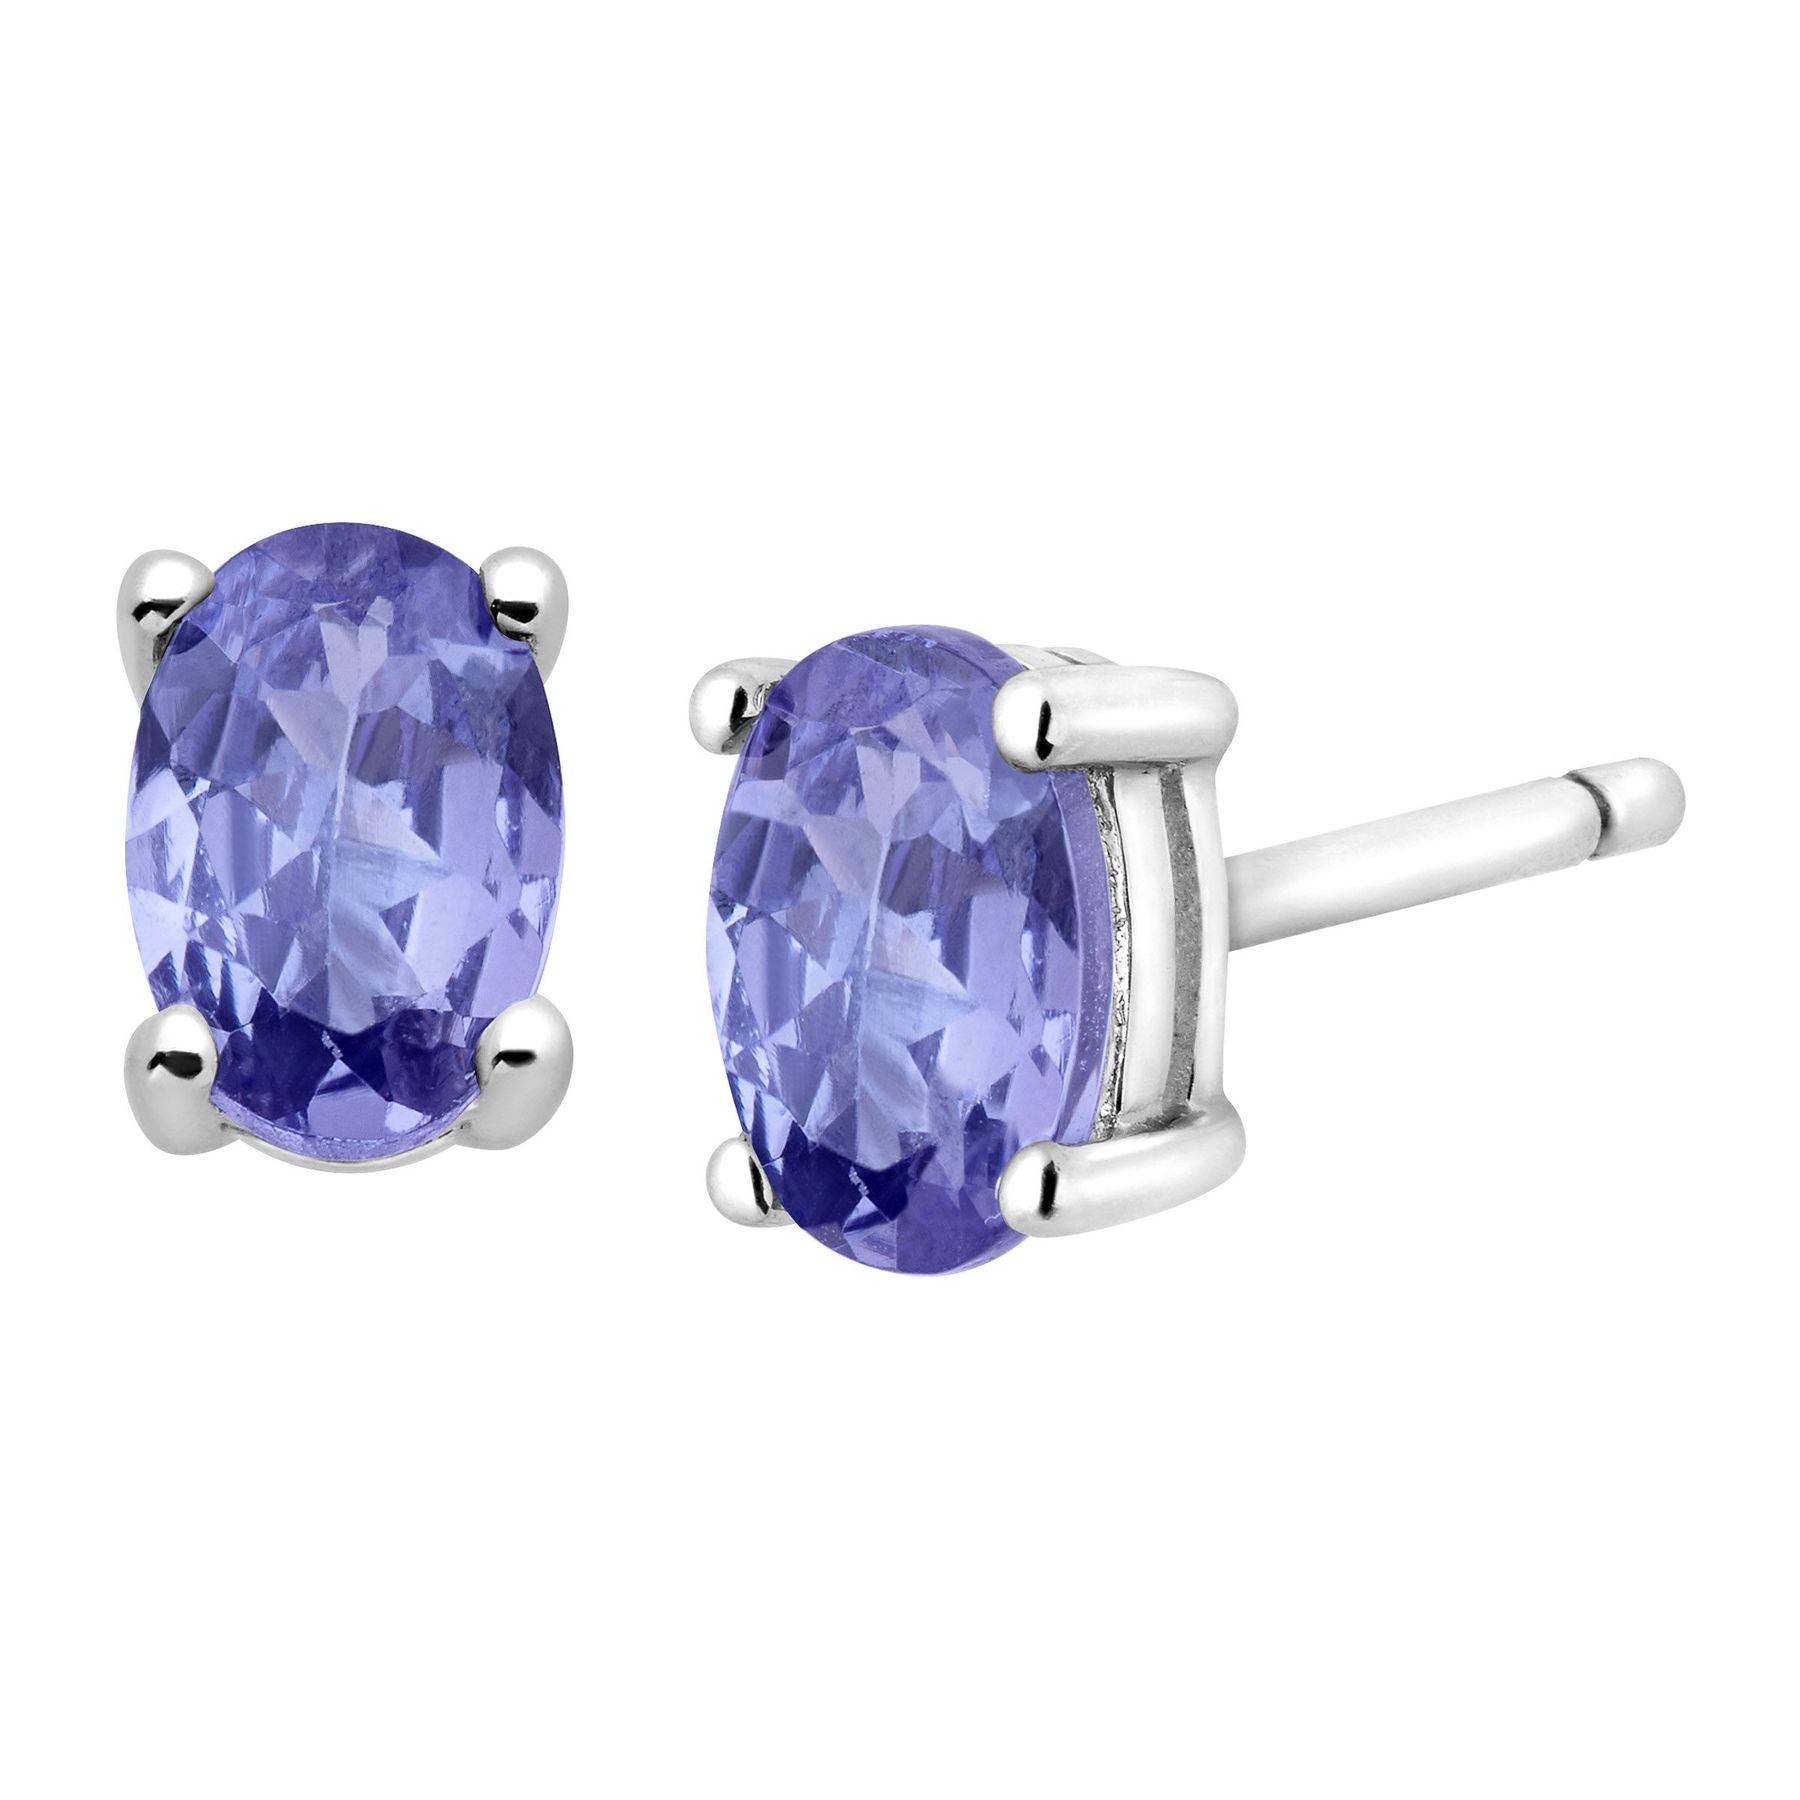 shape yellow hatch bradley standard no gold elements earrings marquise and tanzanite pad product price categories diamond drop